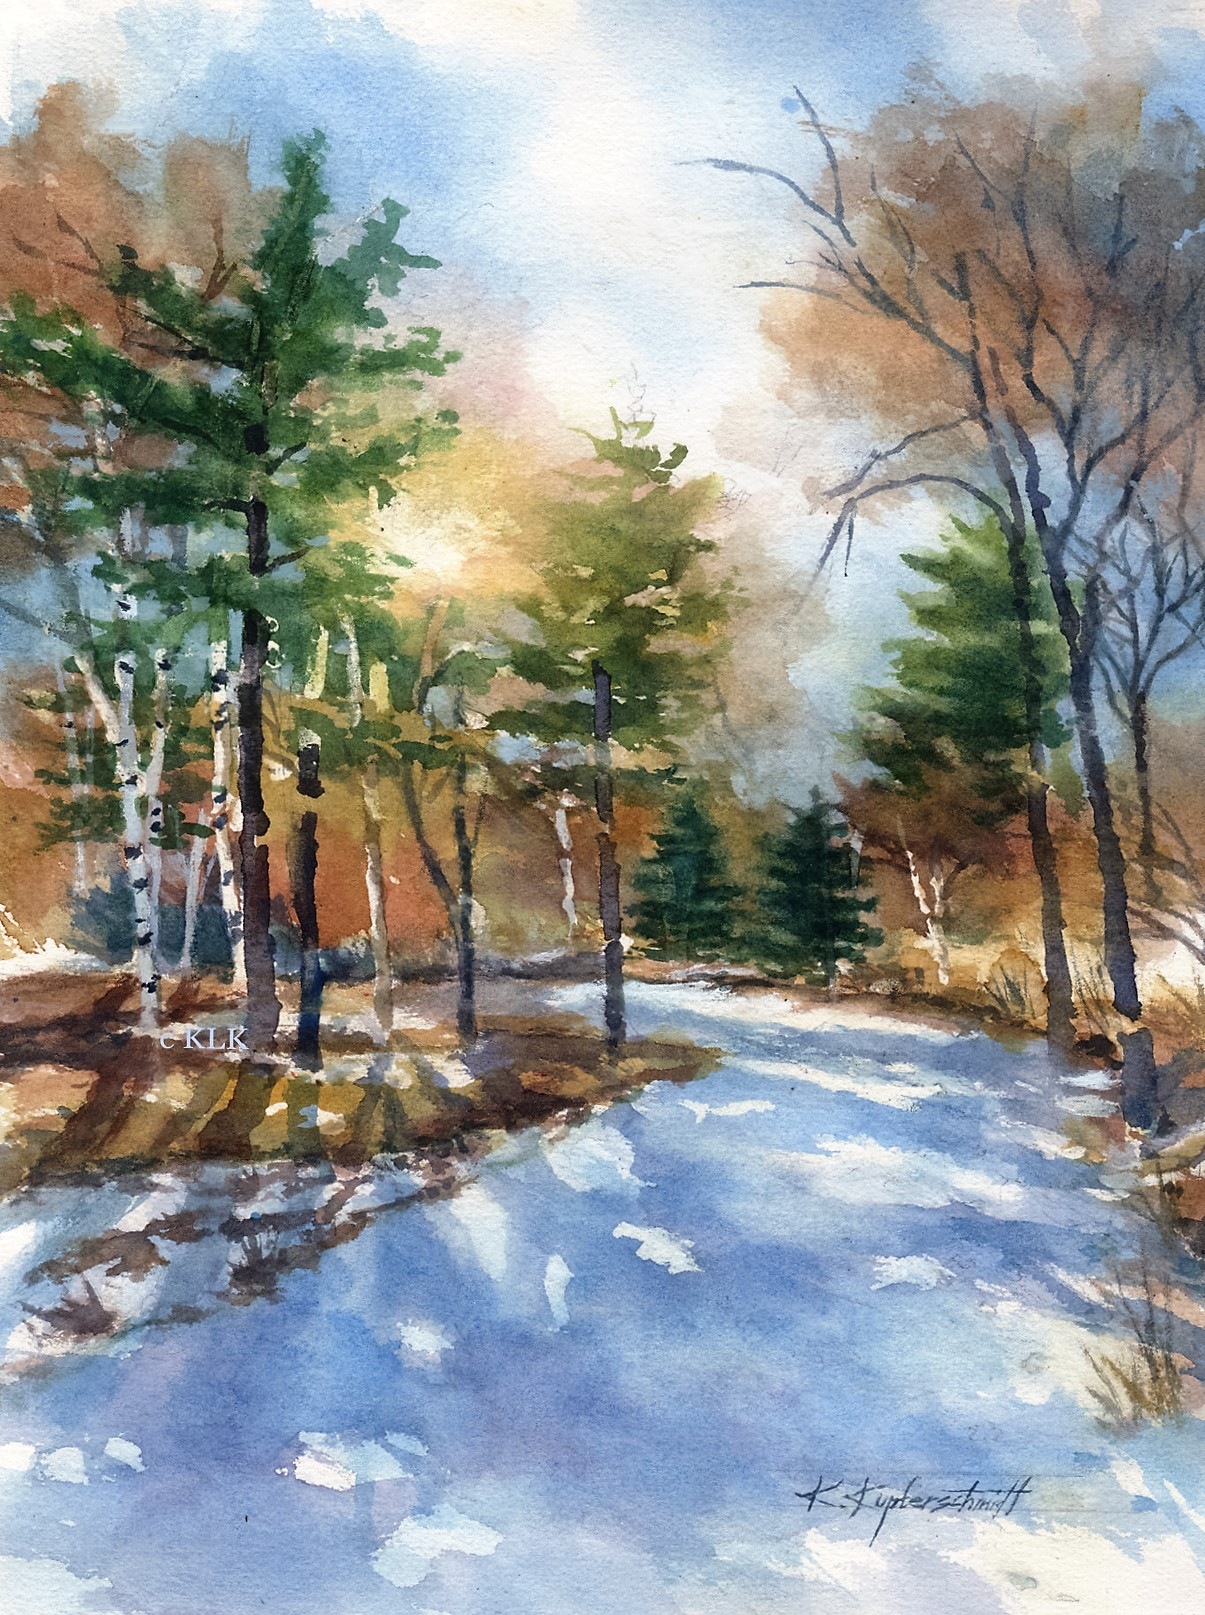 Kupferschmidt - Winter Departs 19 x 23 $325